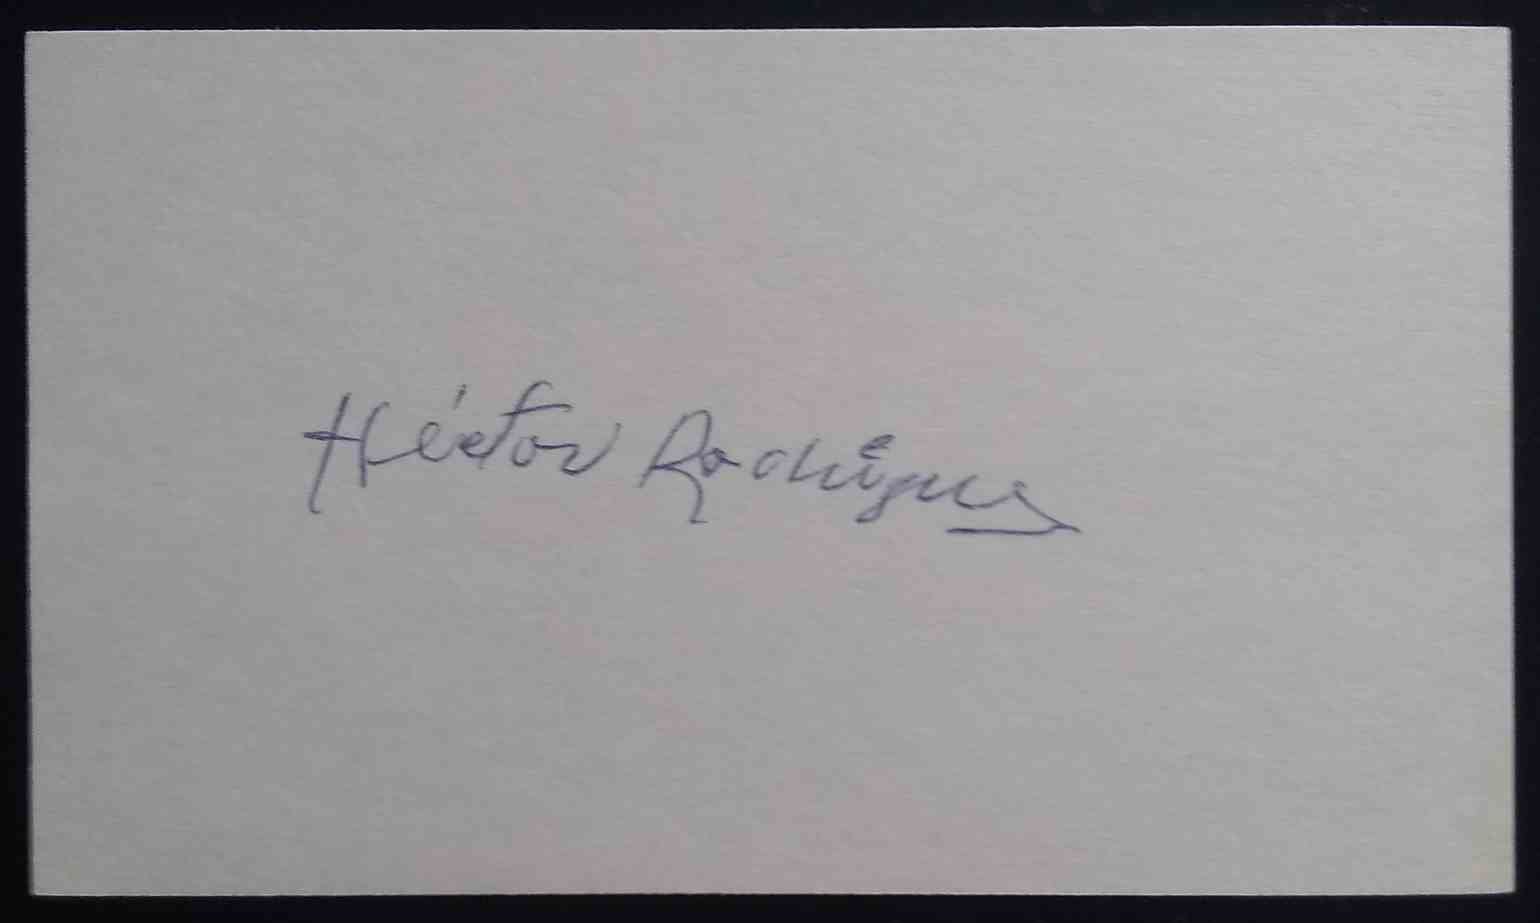 1952 3X5 Hector Rodriguez card front image